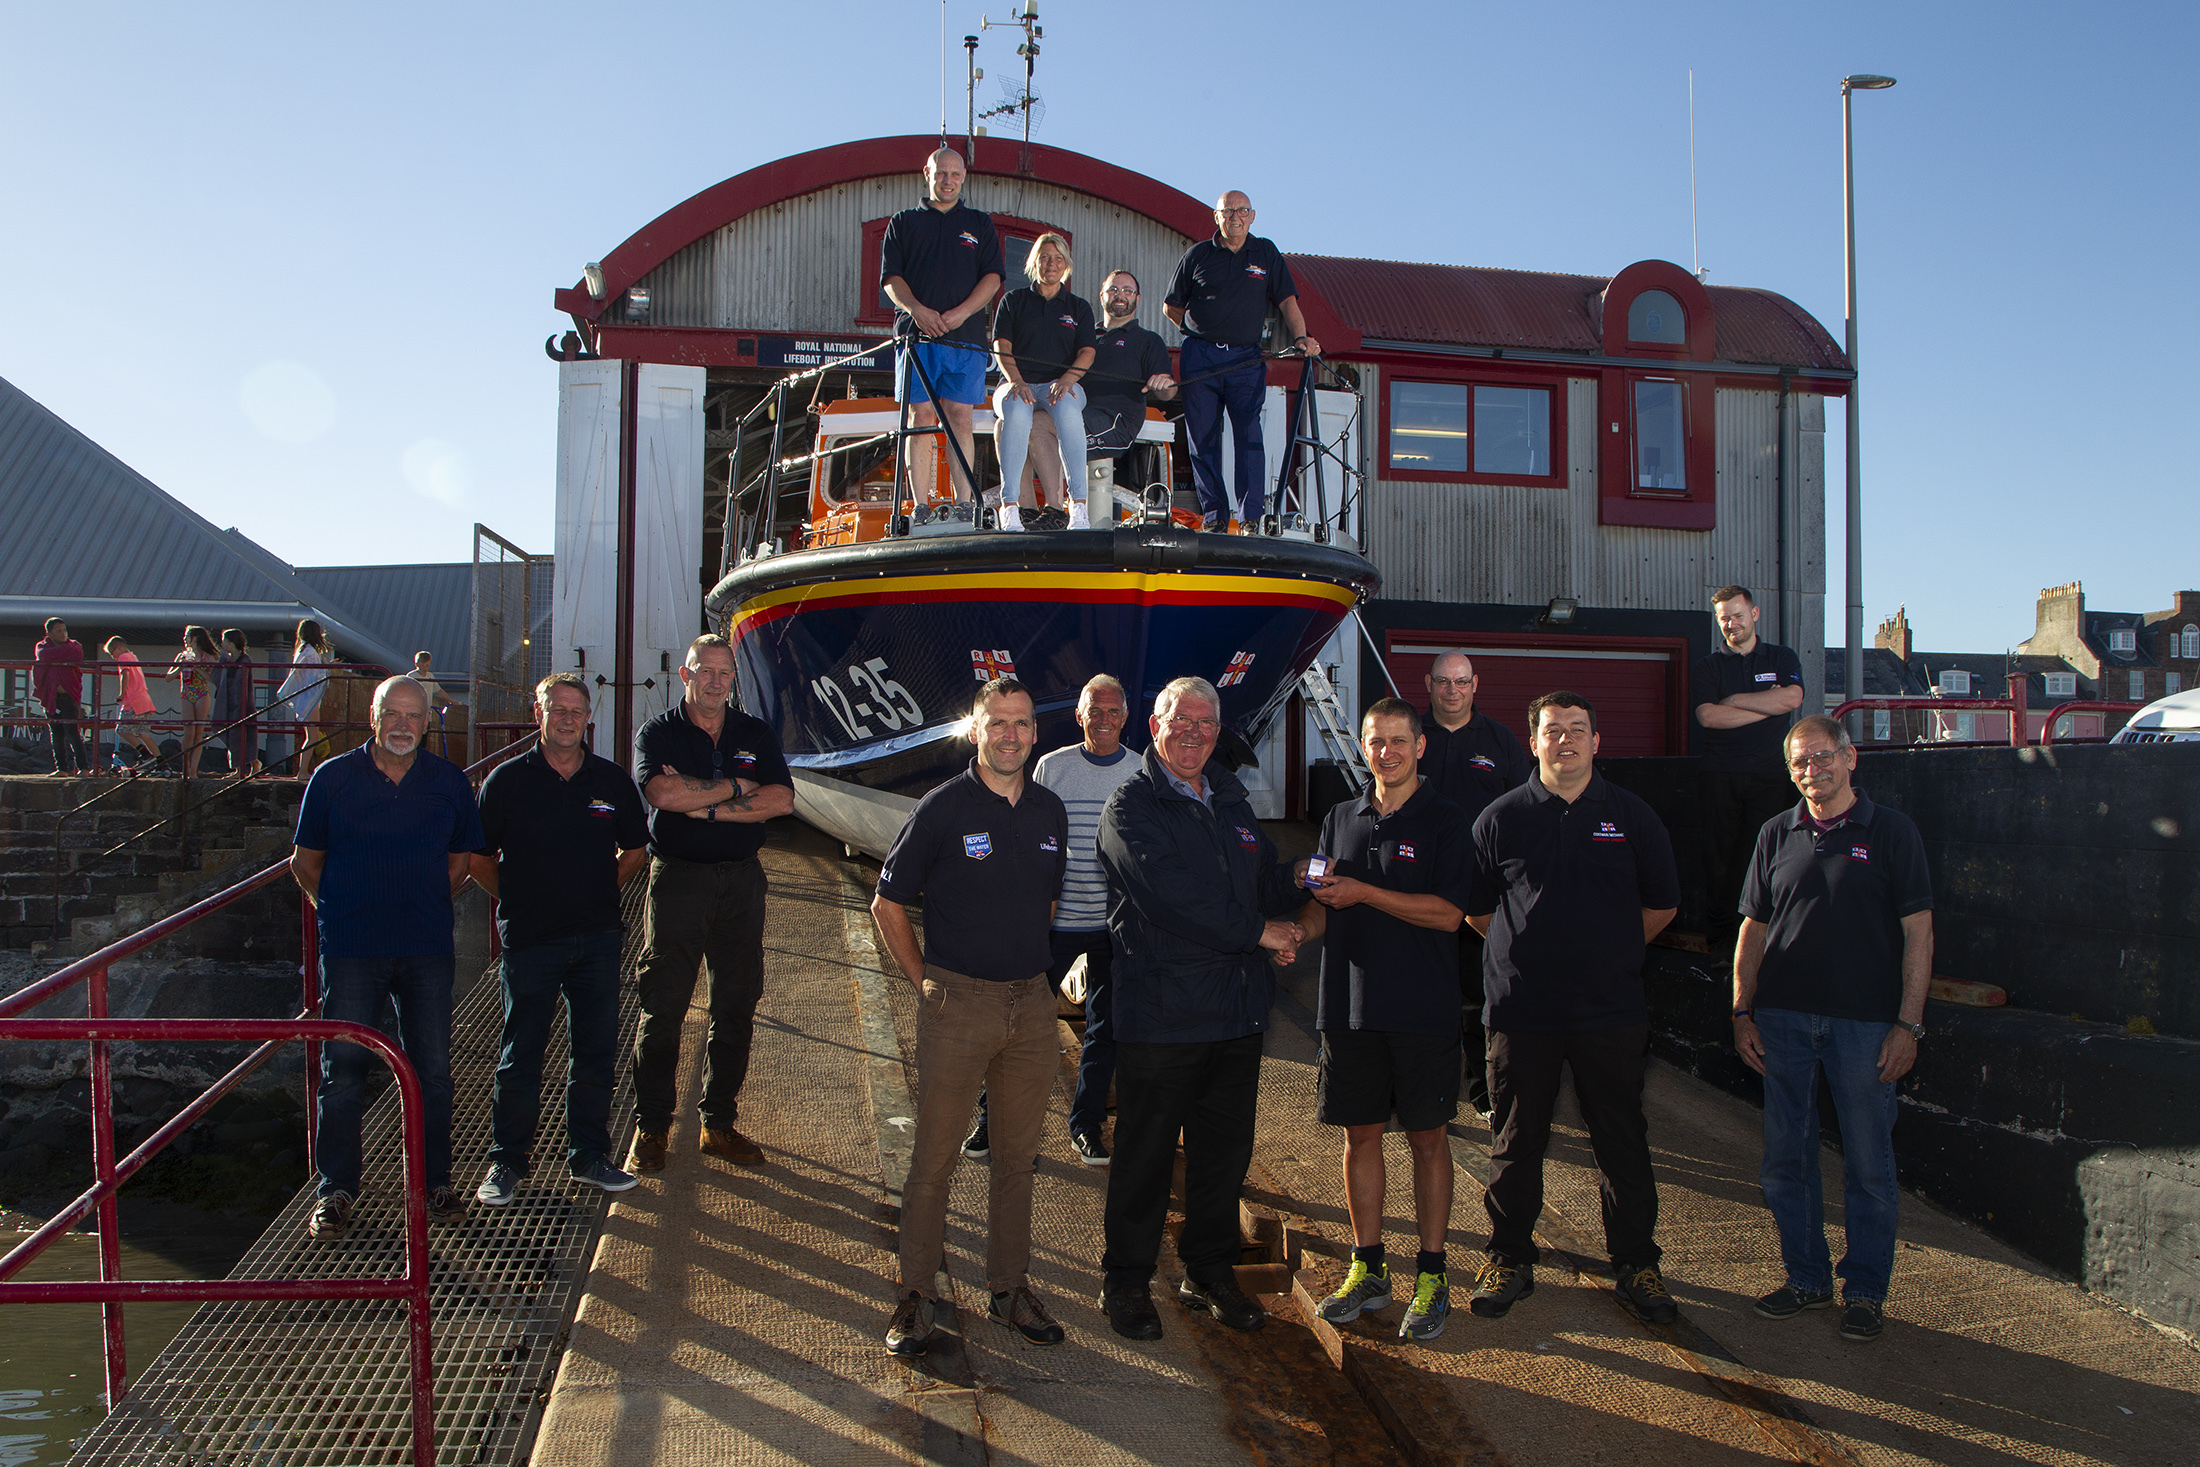 Arbroath RNLI crew with (front left to right): Area lifesaving manager Gavin Baird, operations manager Alex Smith, Peter Willis, Sam Clow and Ron Churchill.